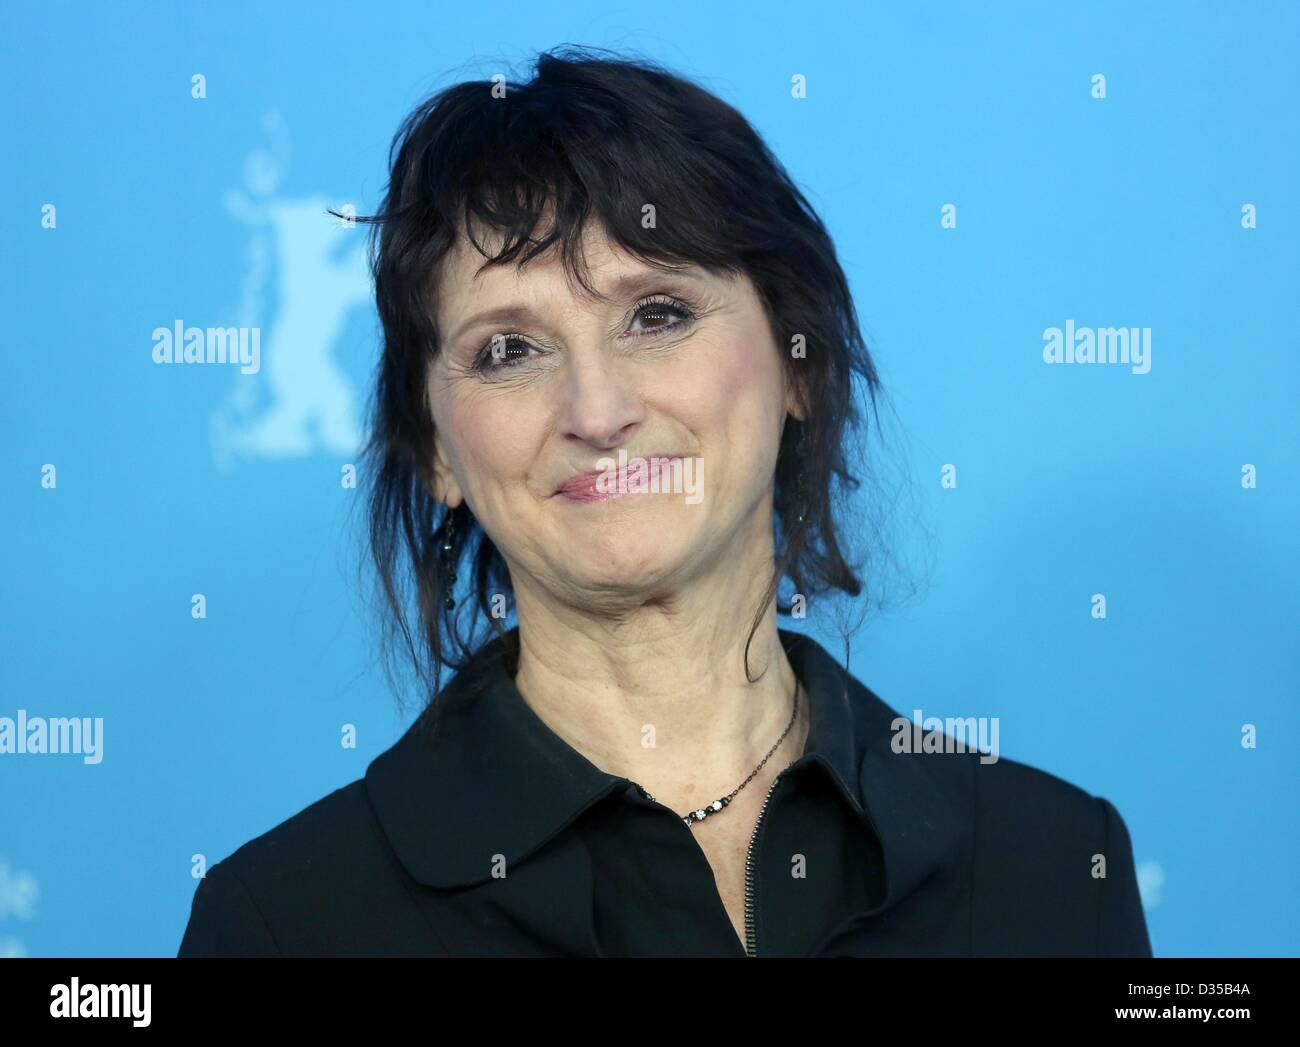 Canadian Actress Pierrette Robitaille Poses At A Photocall For The